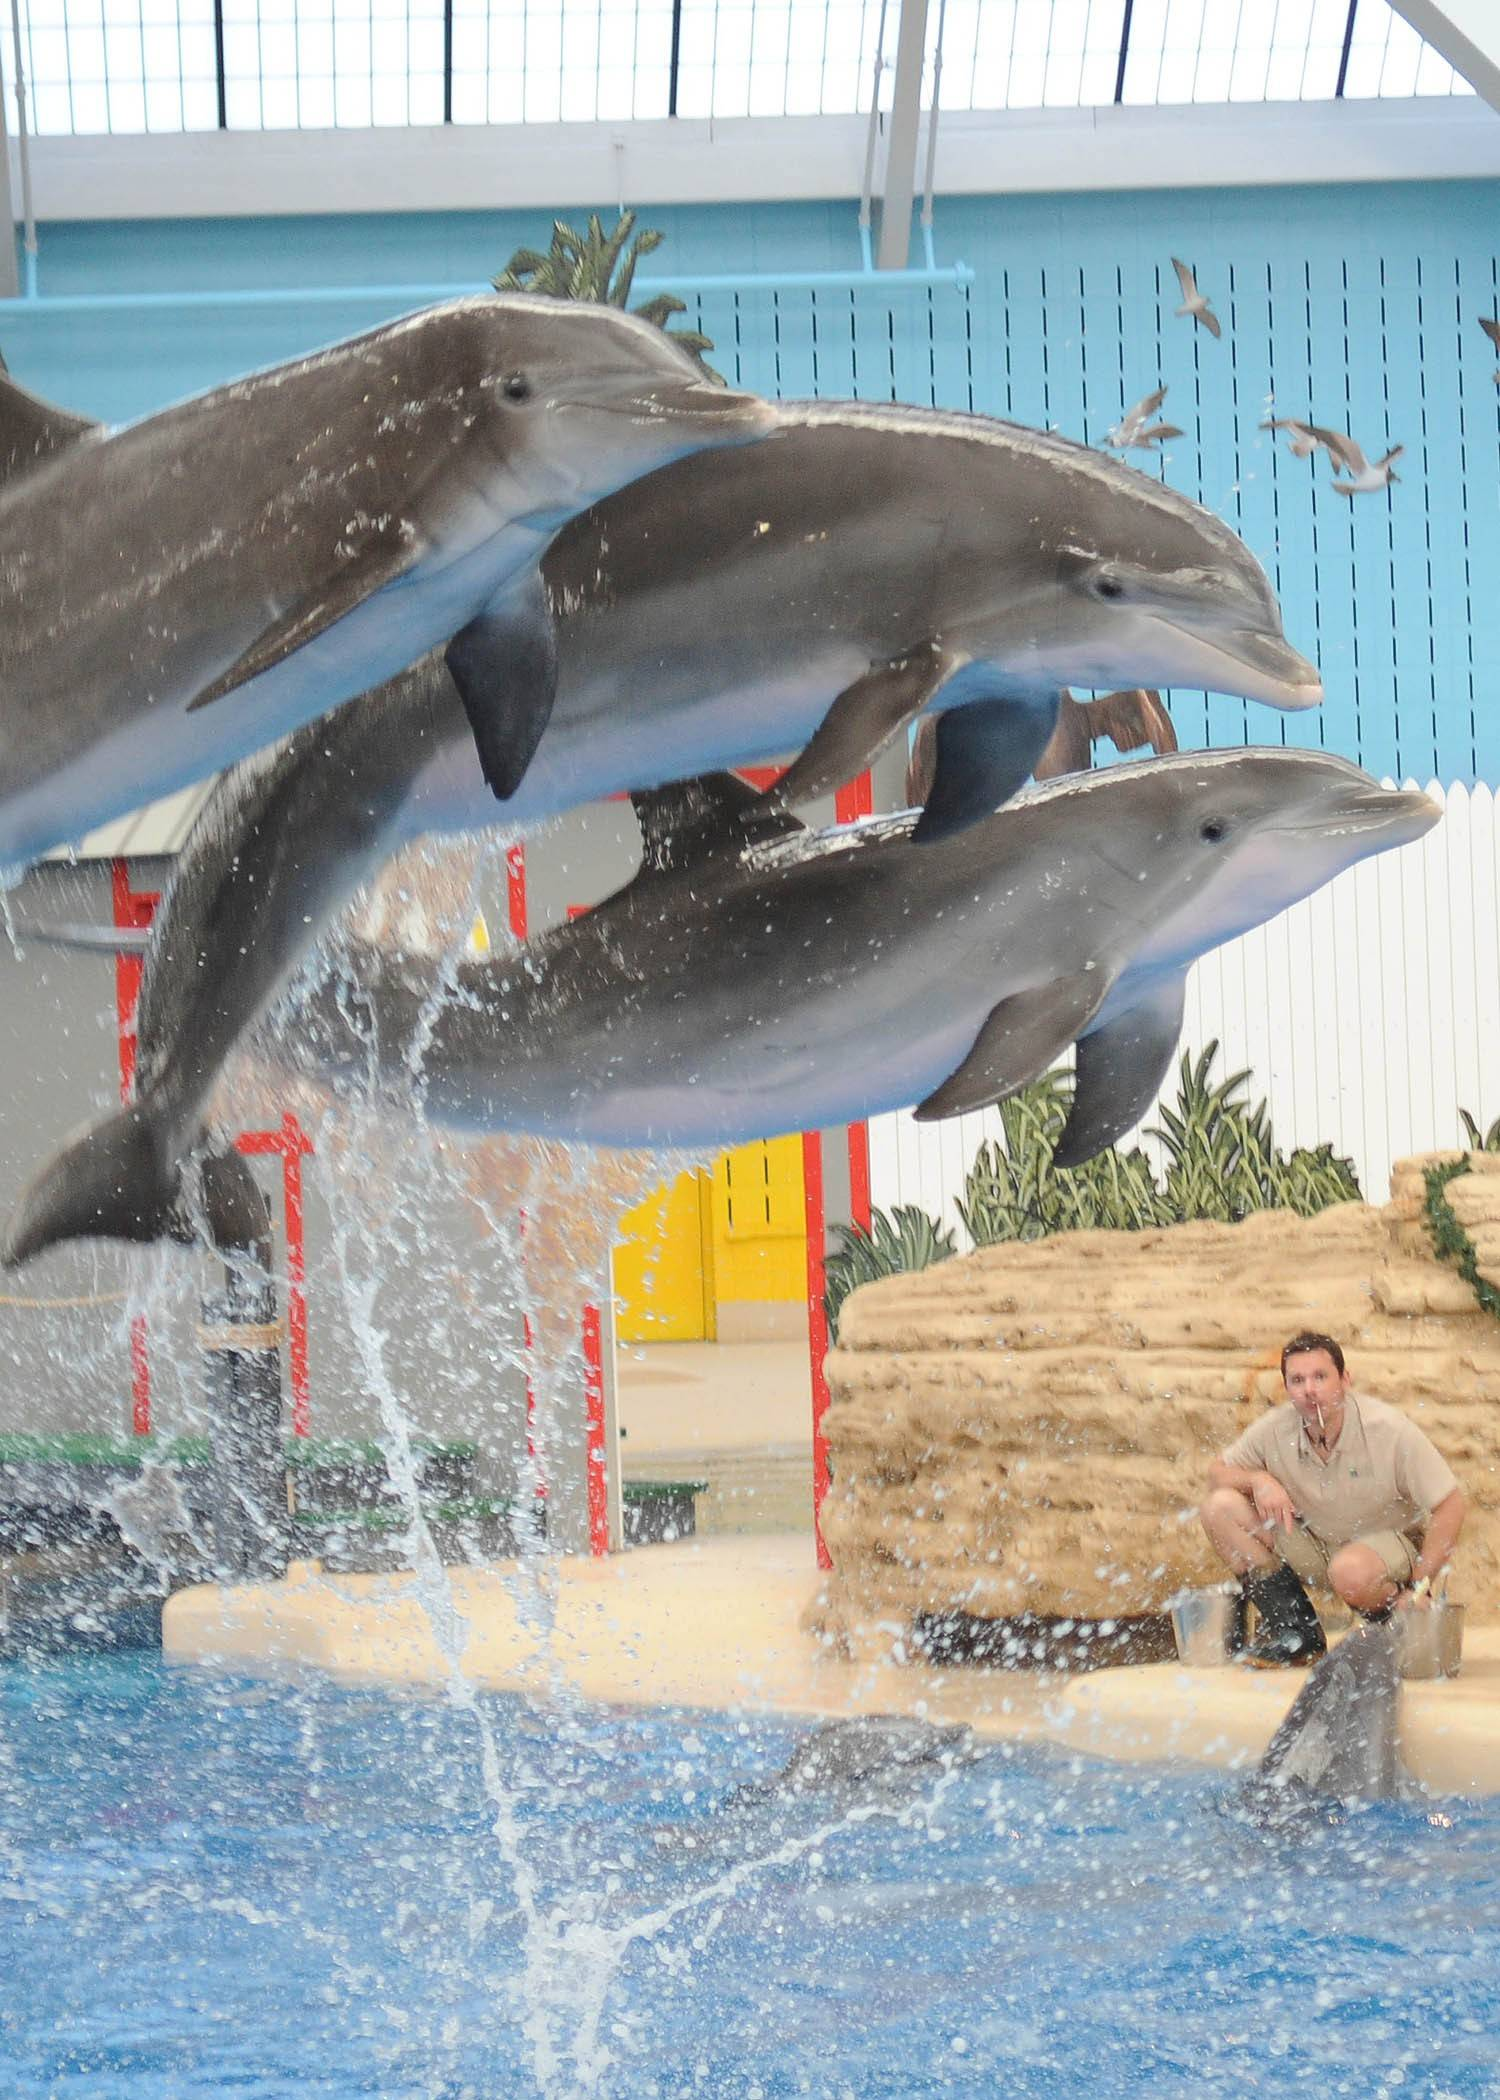 Guests can take in a special 6 p.m. Dolphins in Action show during Brookfield Zoo's Summer Nights on Fridays and Saturdays, now through July 26.